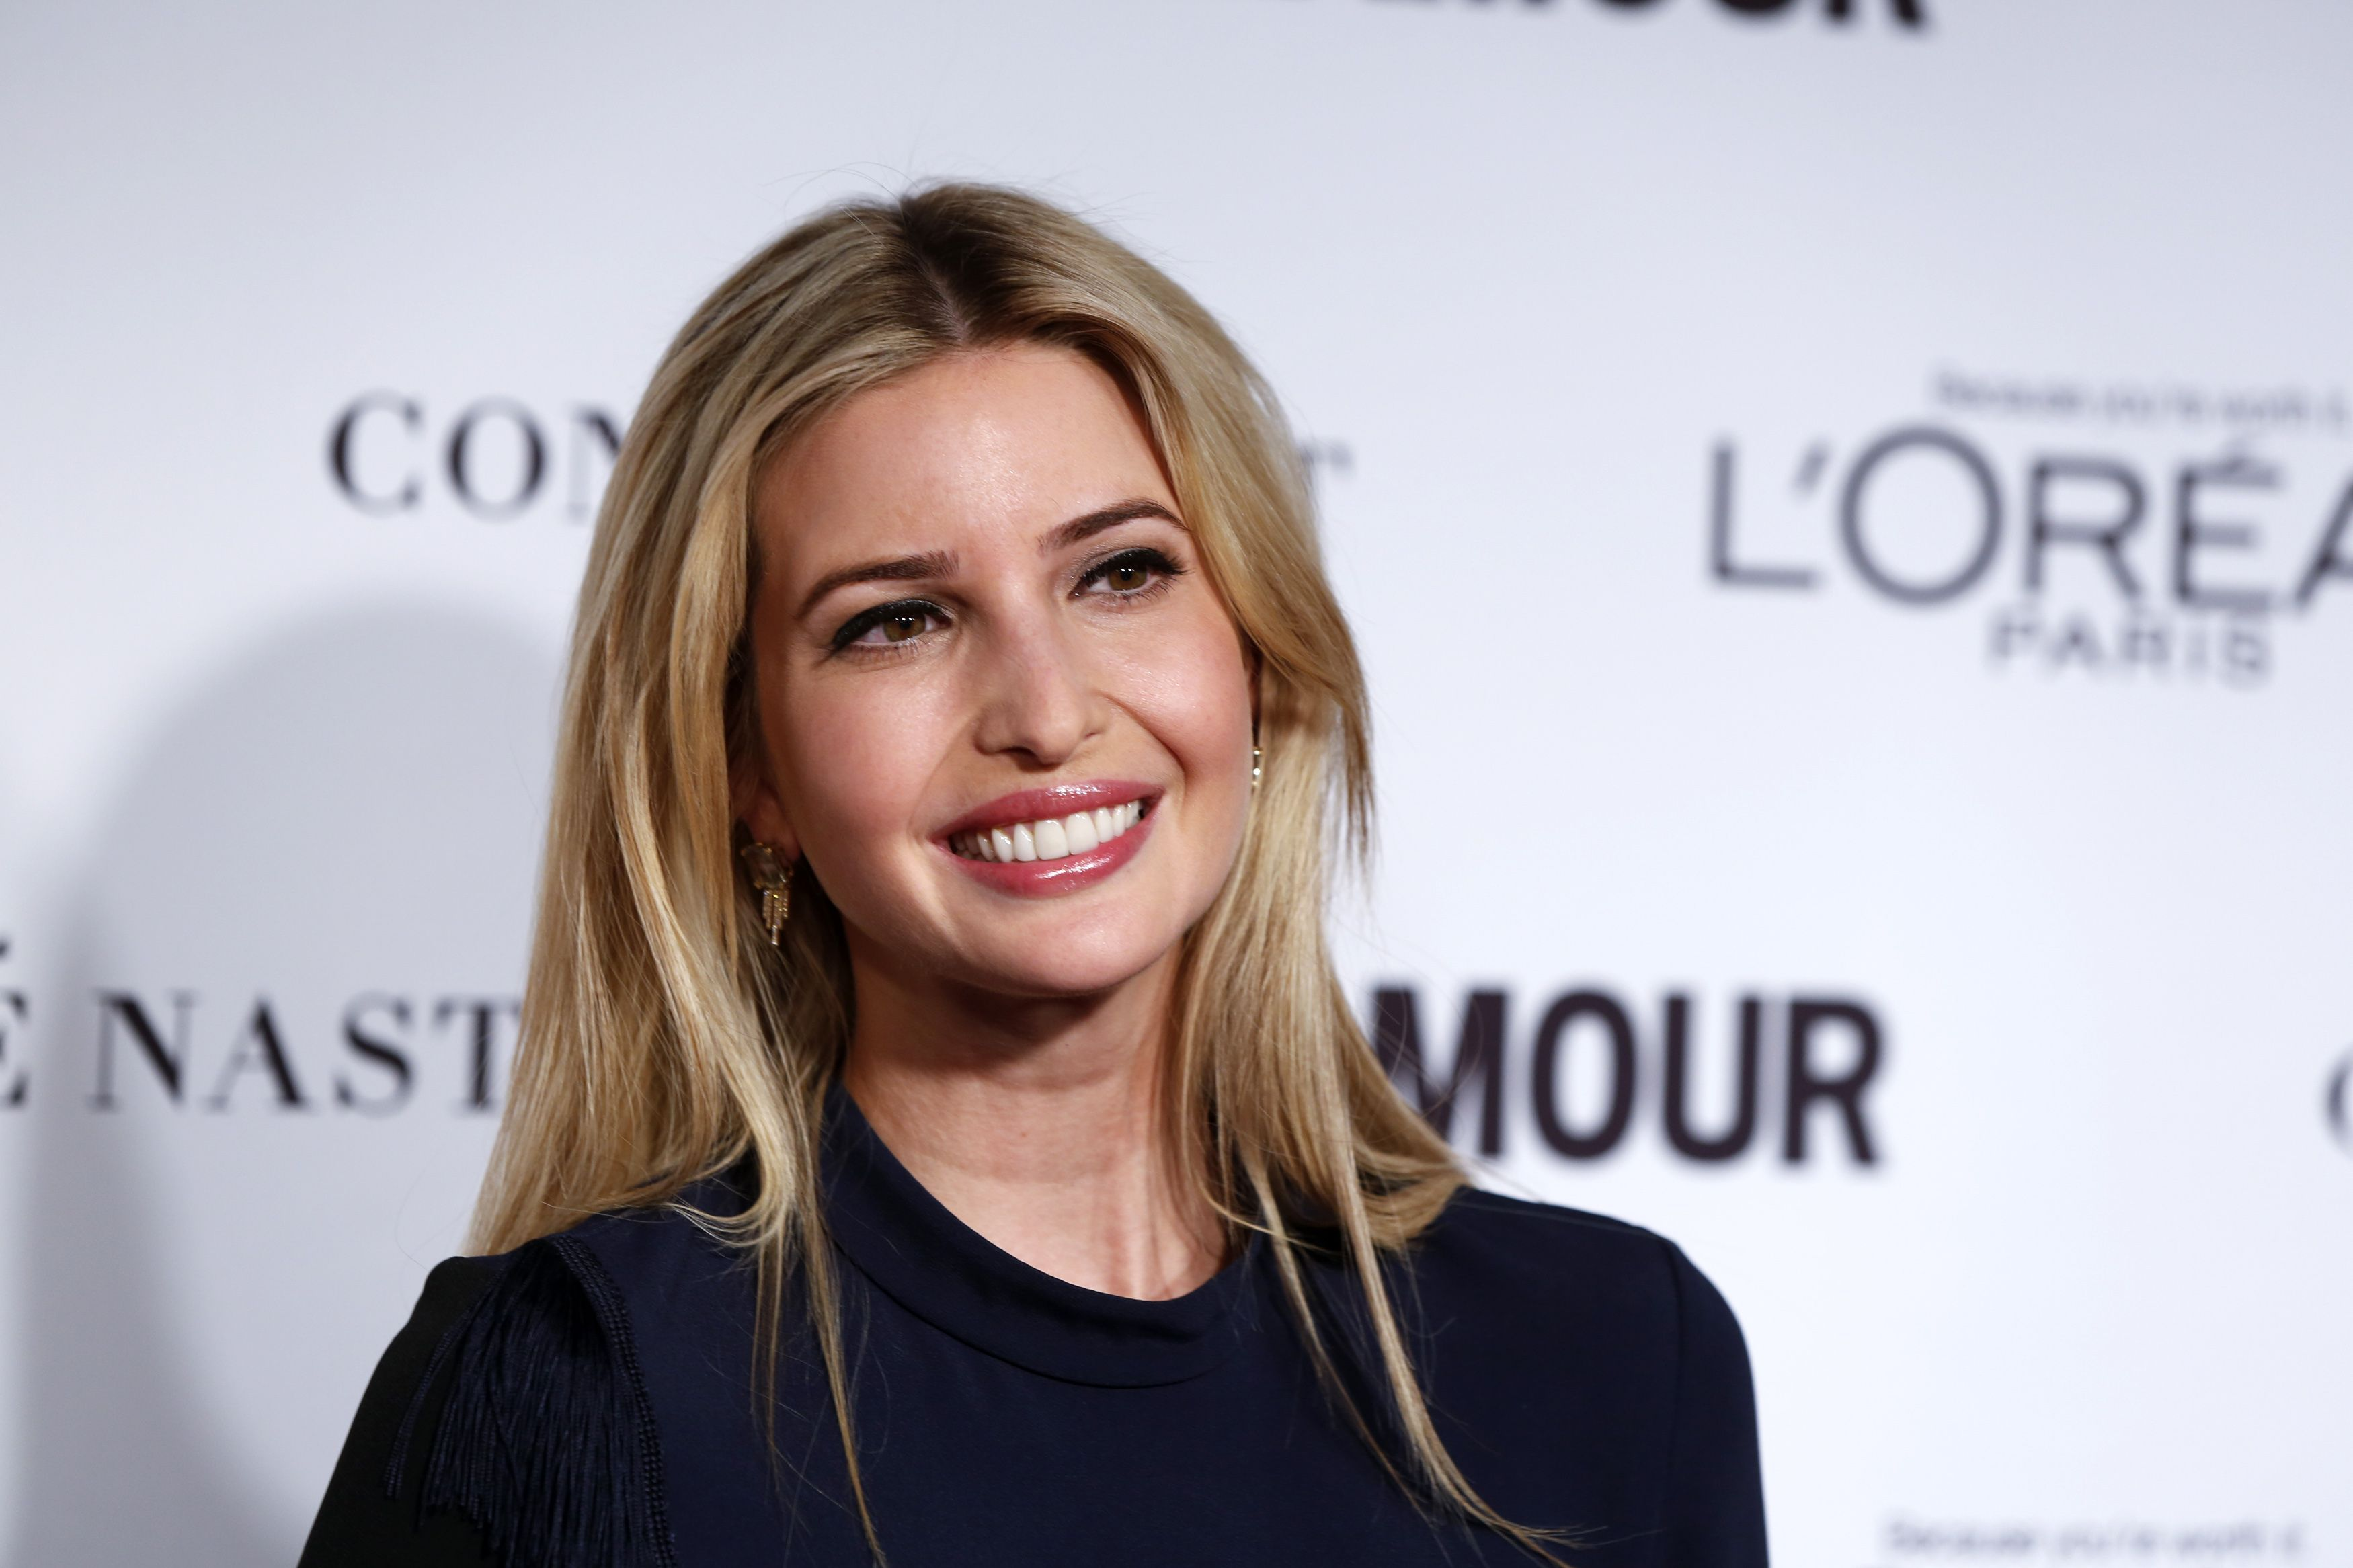 ivanka trump 4k widescreen desktop wallpaper 1360